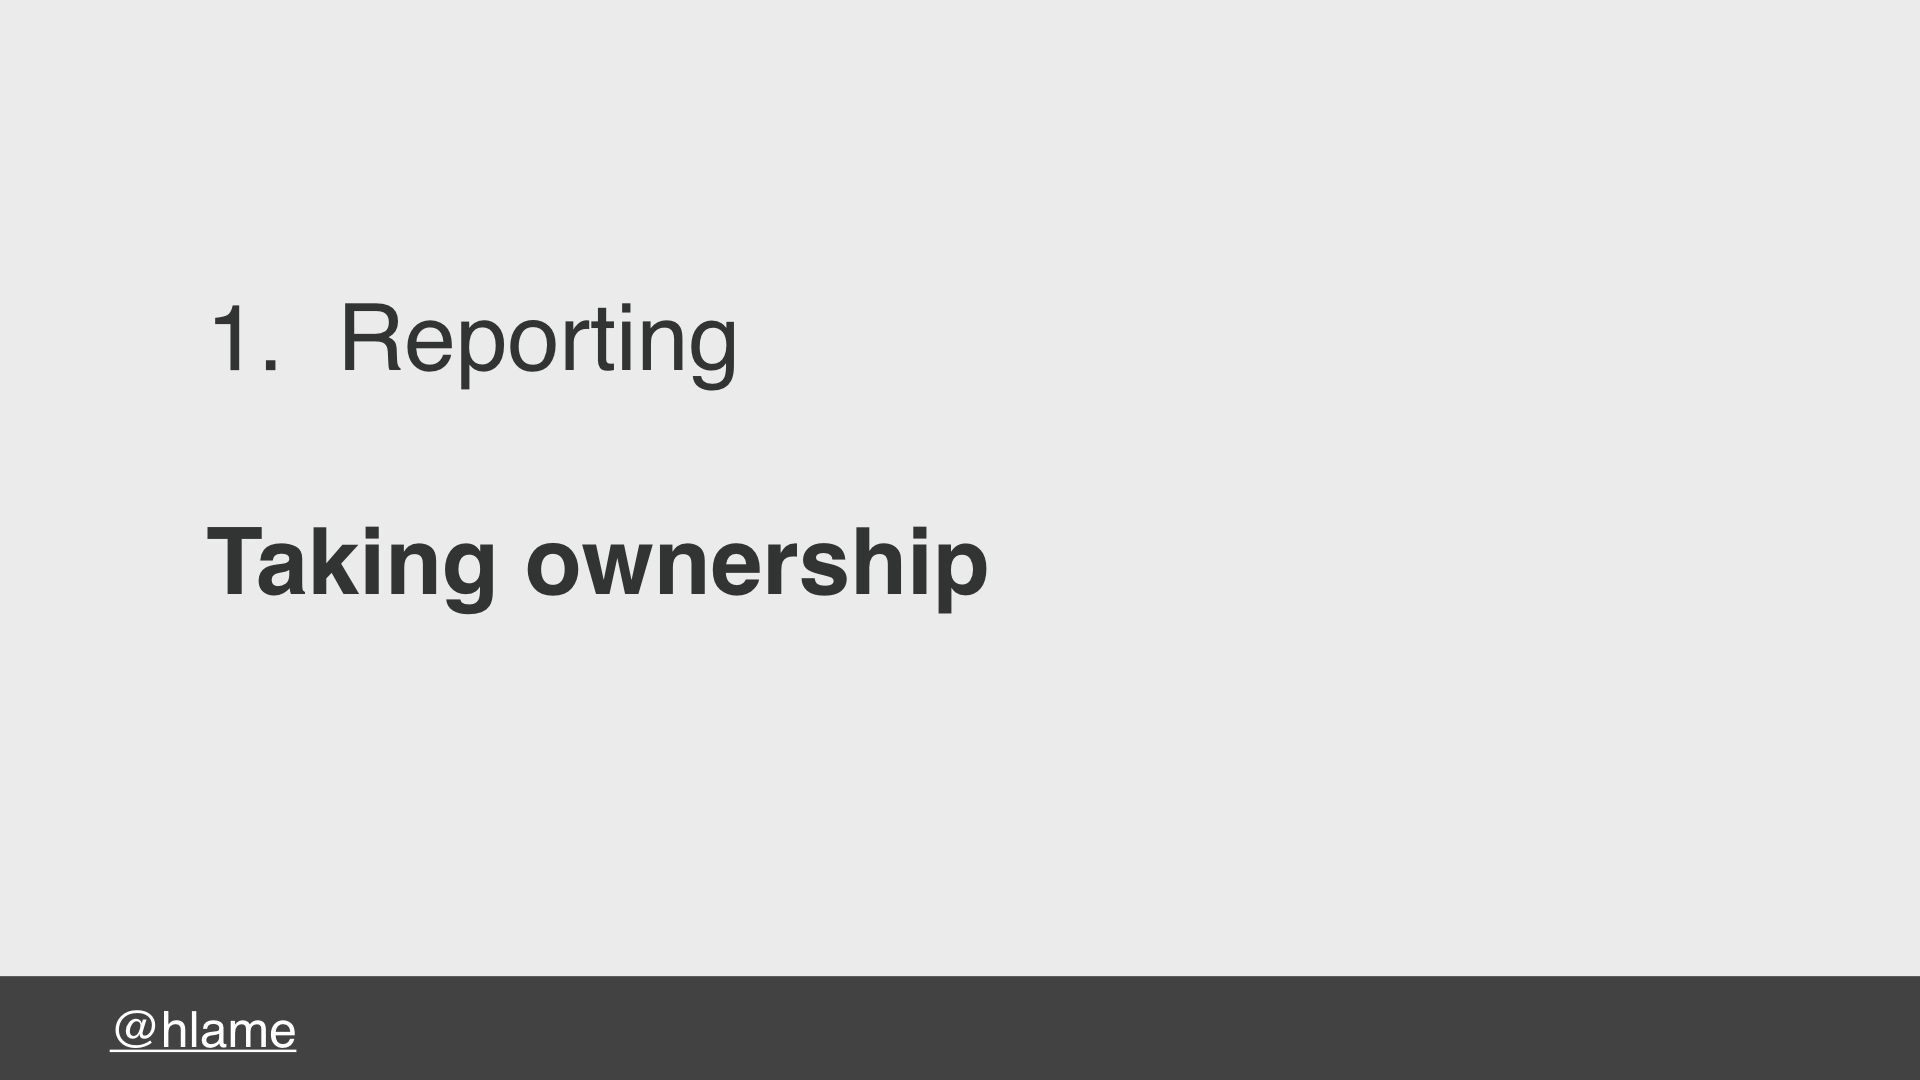 text: 1. Reporting, Taking ownership